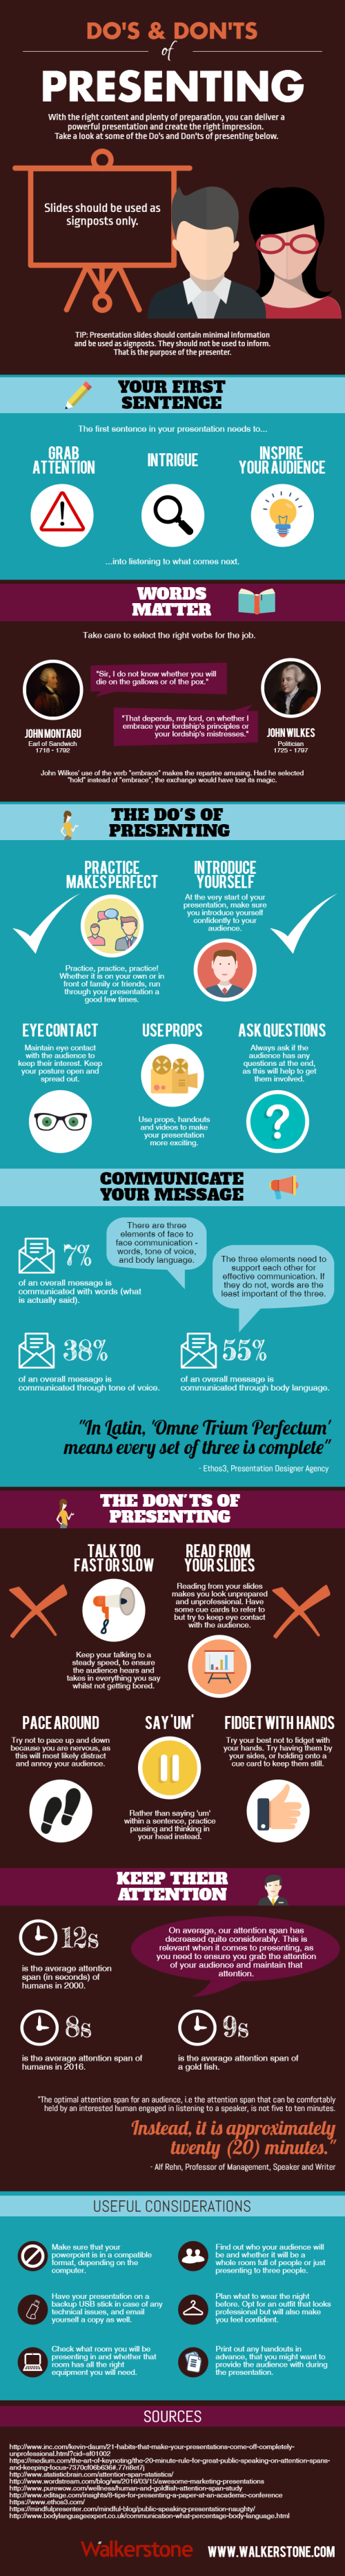 Presenting_infographic-FINAL